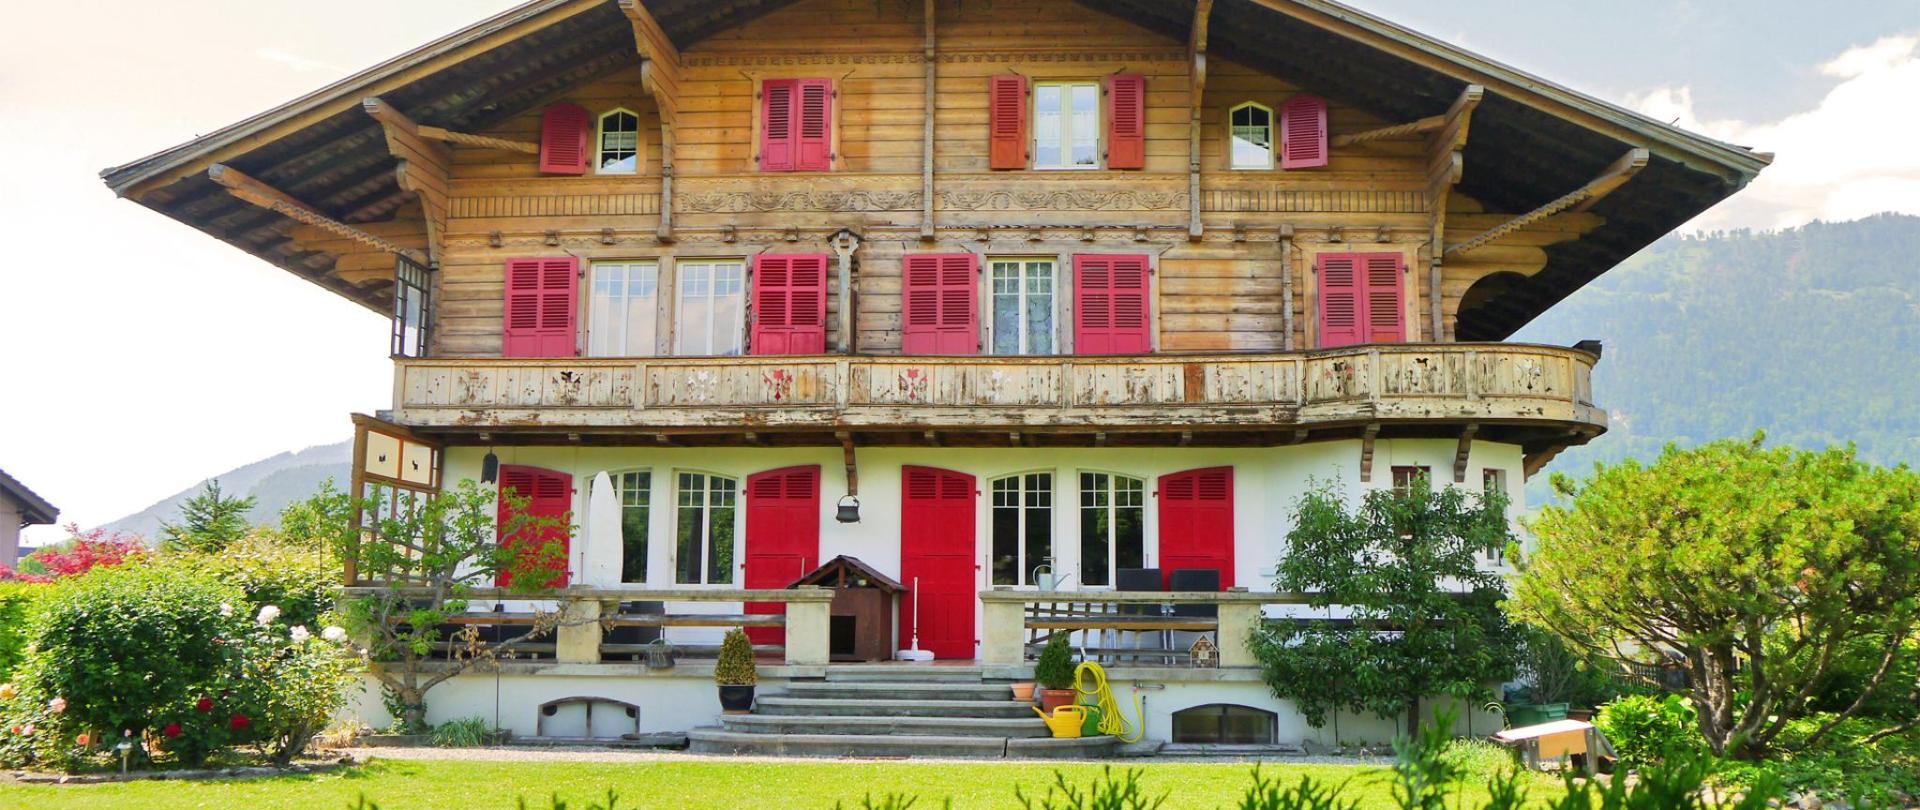 Chalet Maria Front 2.jpg